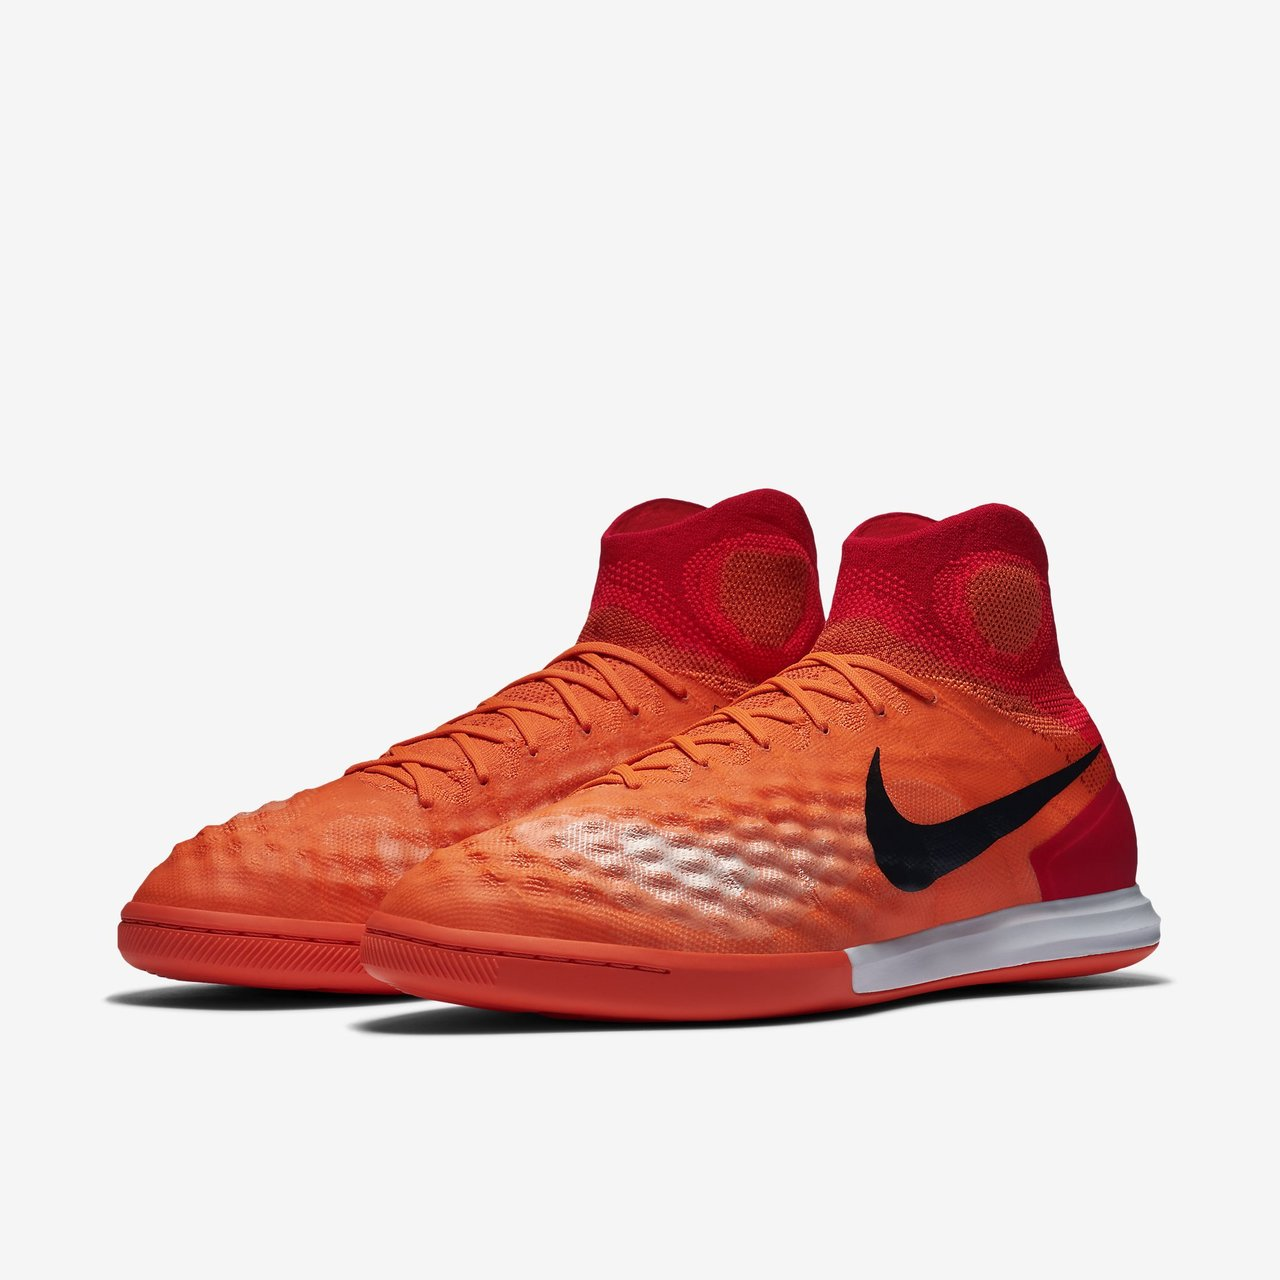 4738d858ccbe closeout pink nike magistax proximo ii ic sports shoes aae4a 36a82  sale  click to enlarge image ...